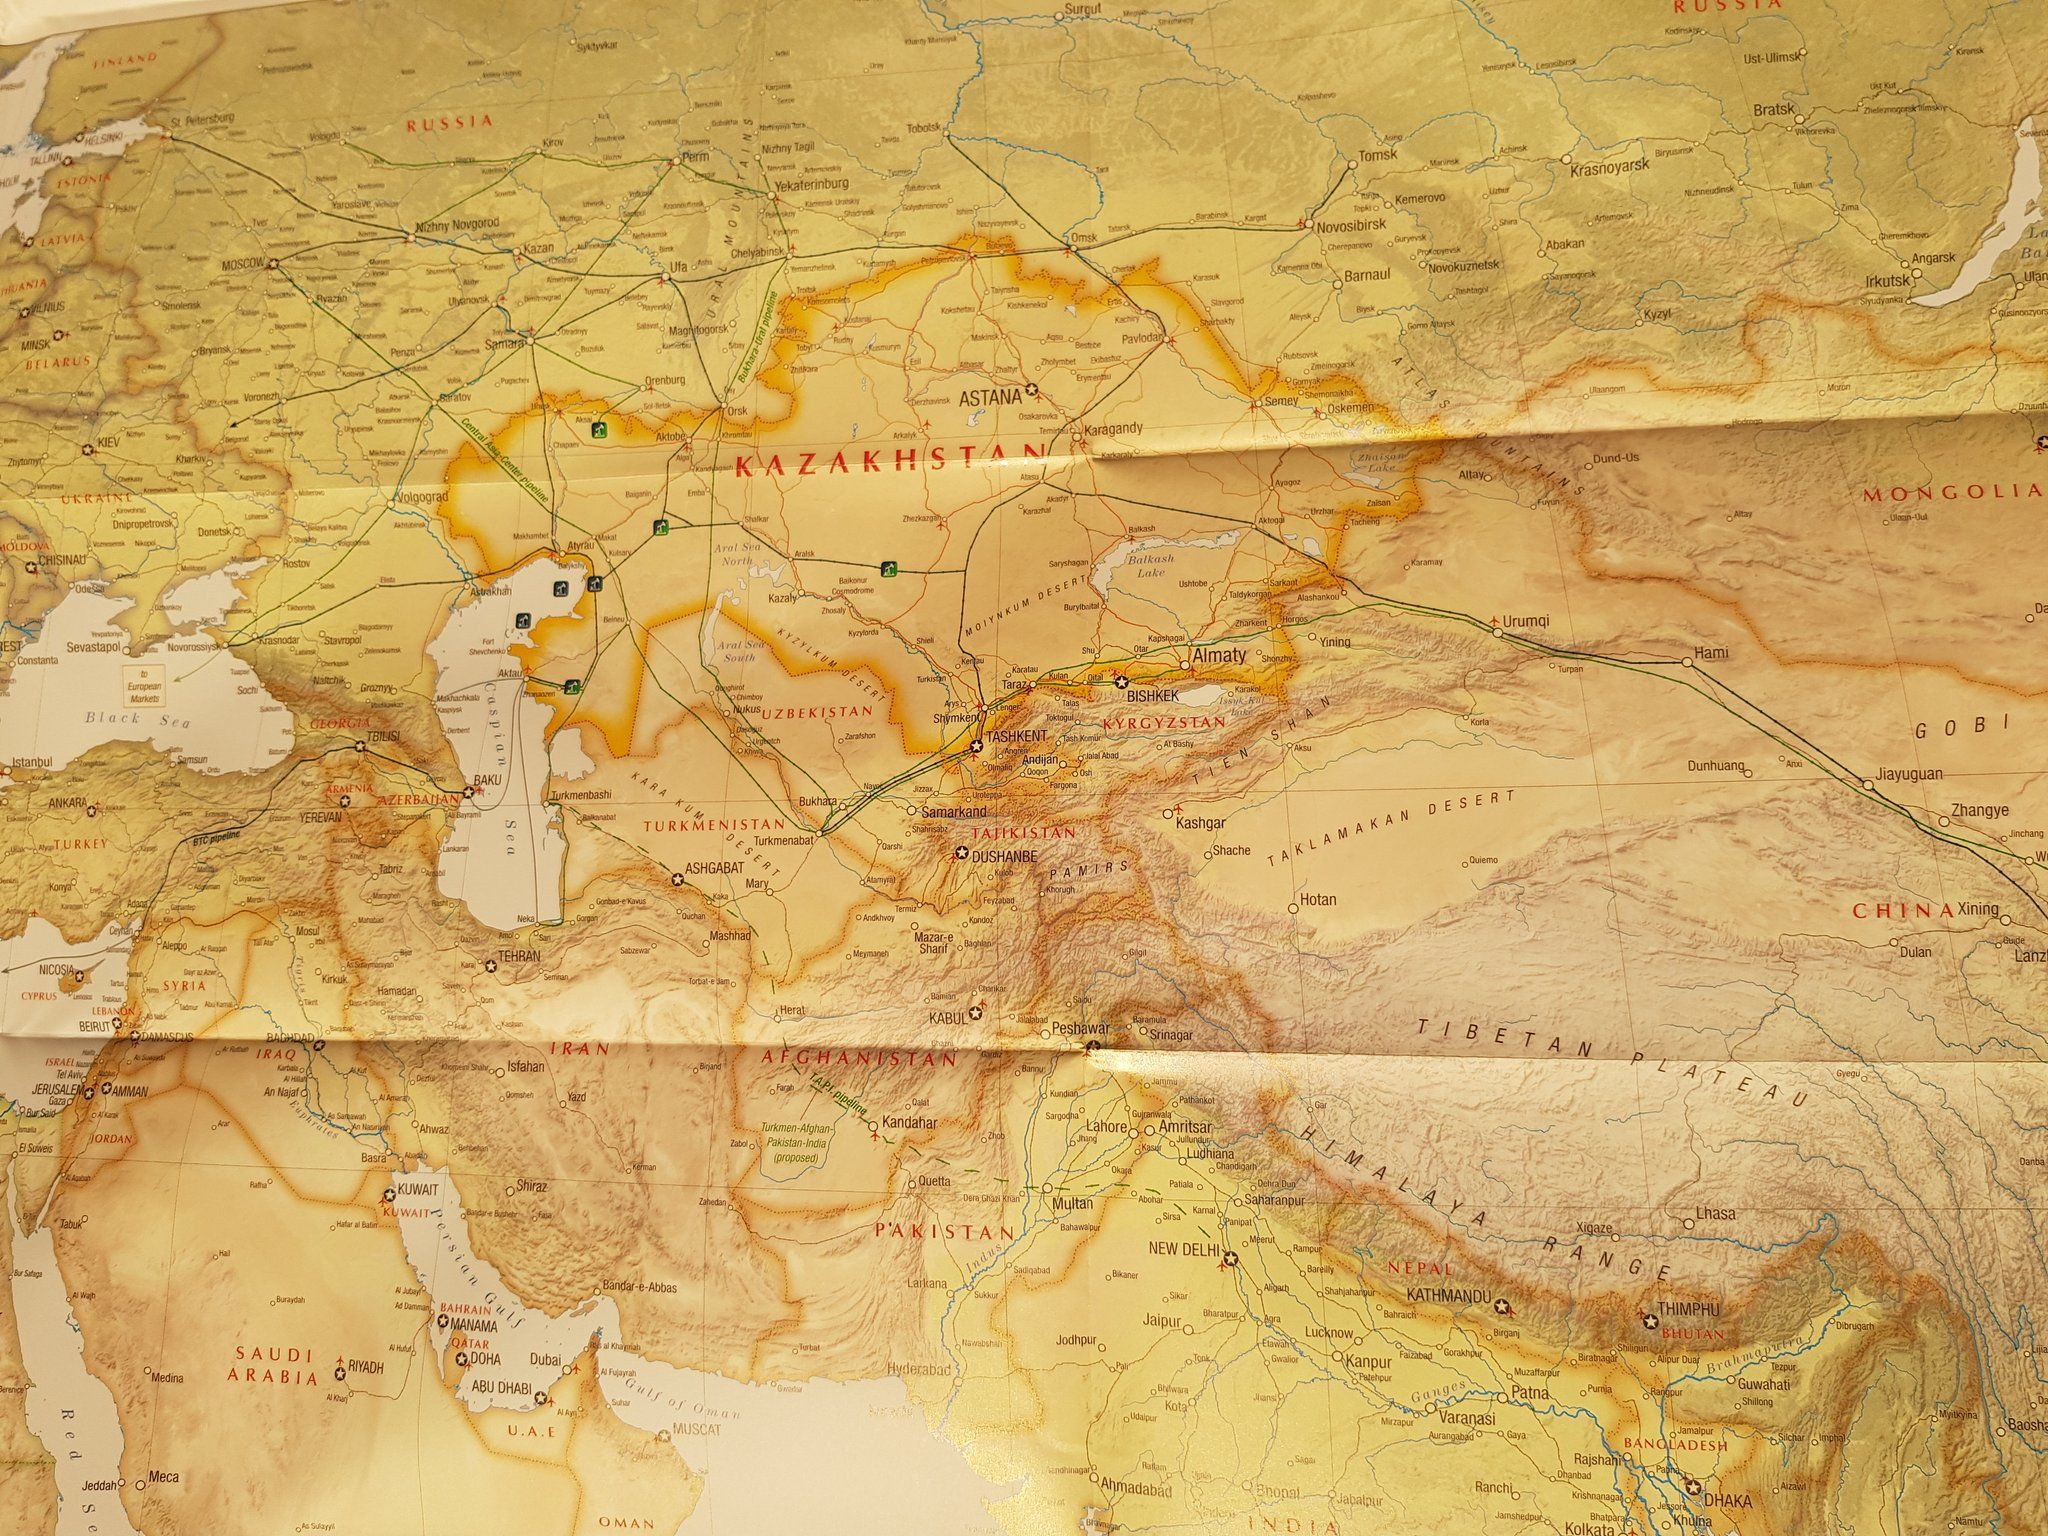 China's Belt and Road initiative, explained by Kazakhstan – EURACTIV com